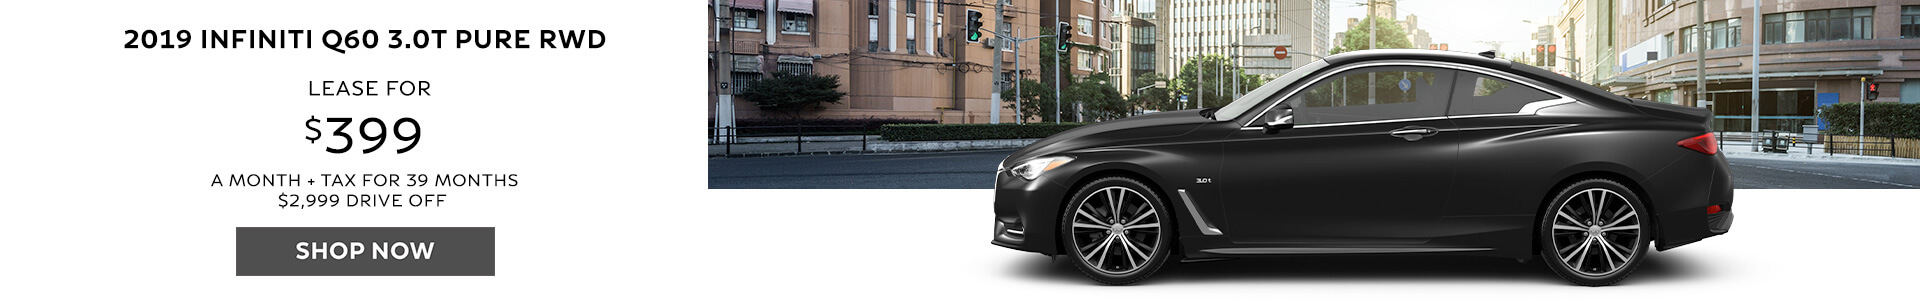 Q60 Lease for $399